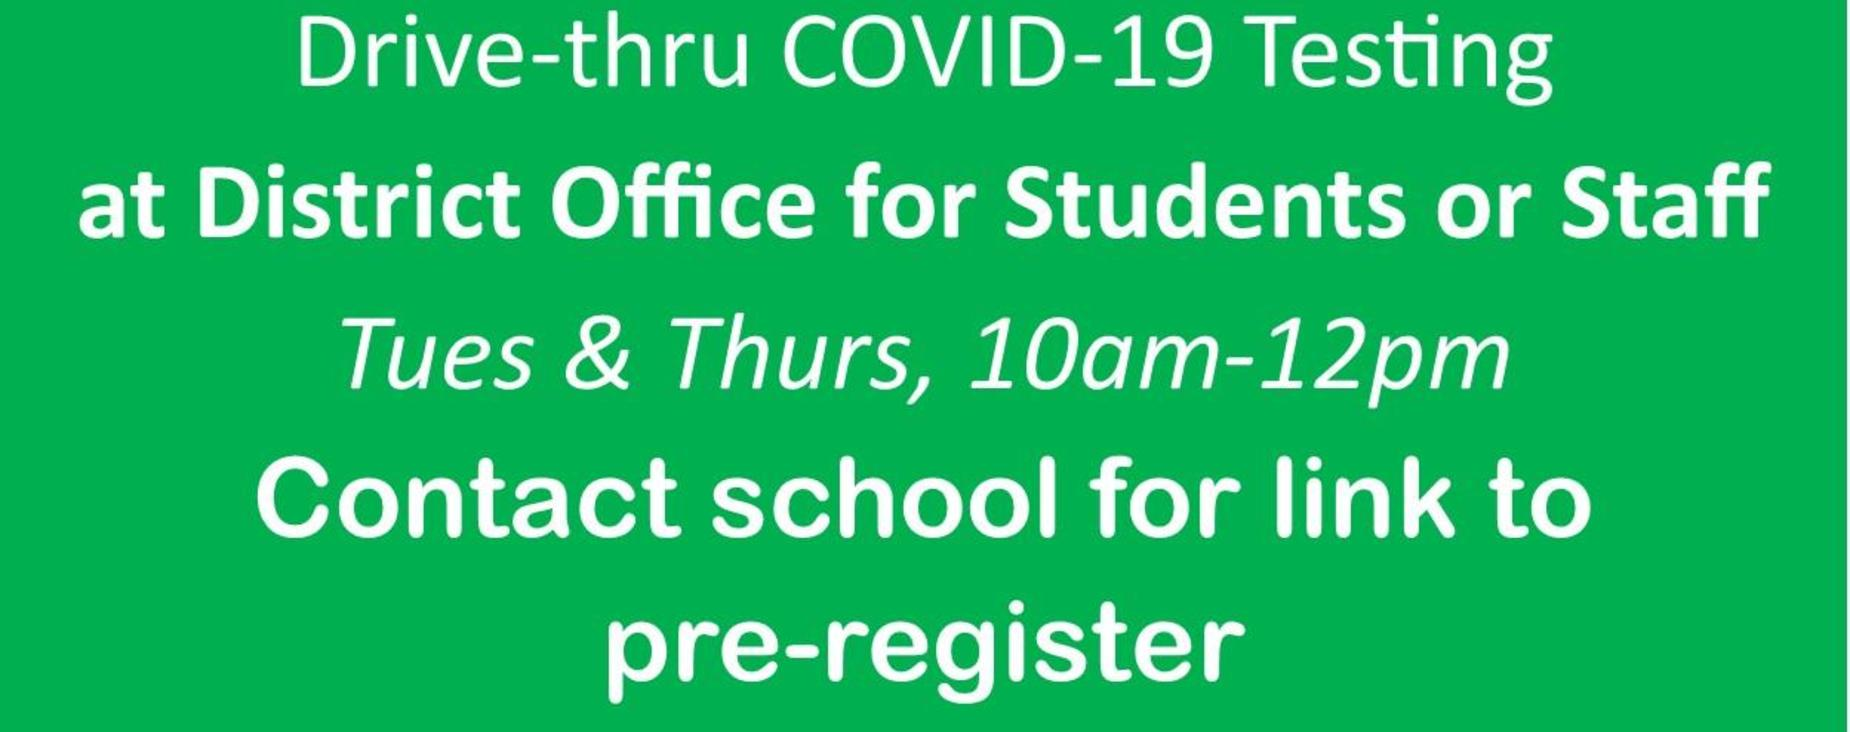 COVID-19 testing at District Office Tues and Thurs 10a-12pm. Contact school for link to pre-register